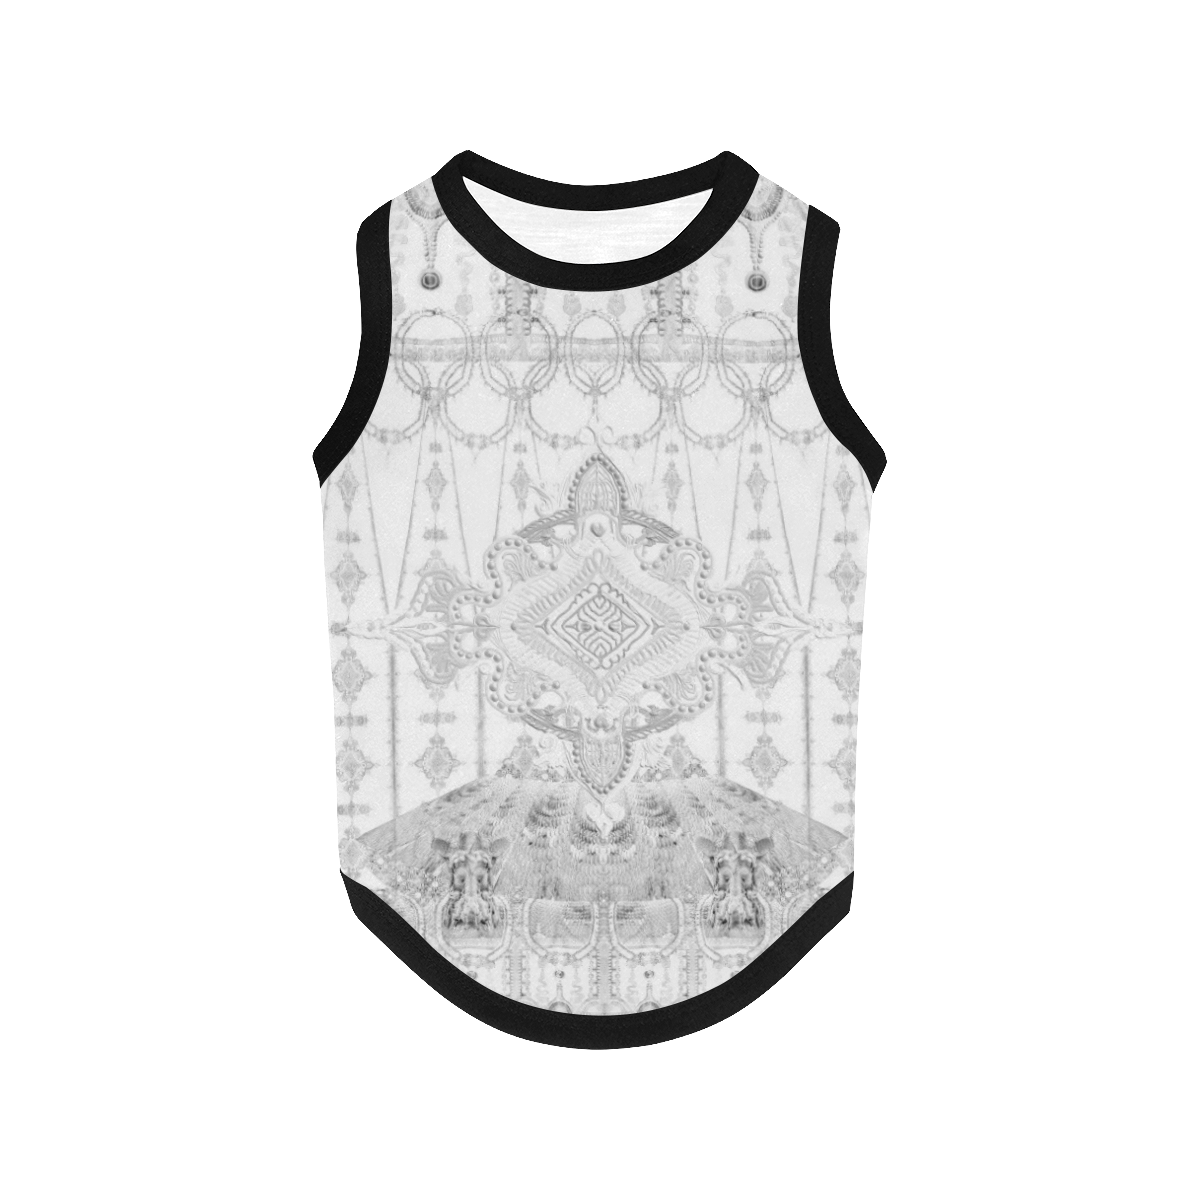 haute couture 20 All Over Print Pet Tank Top